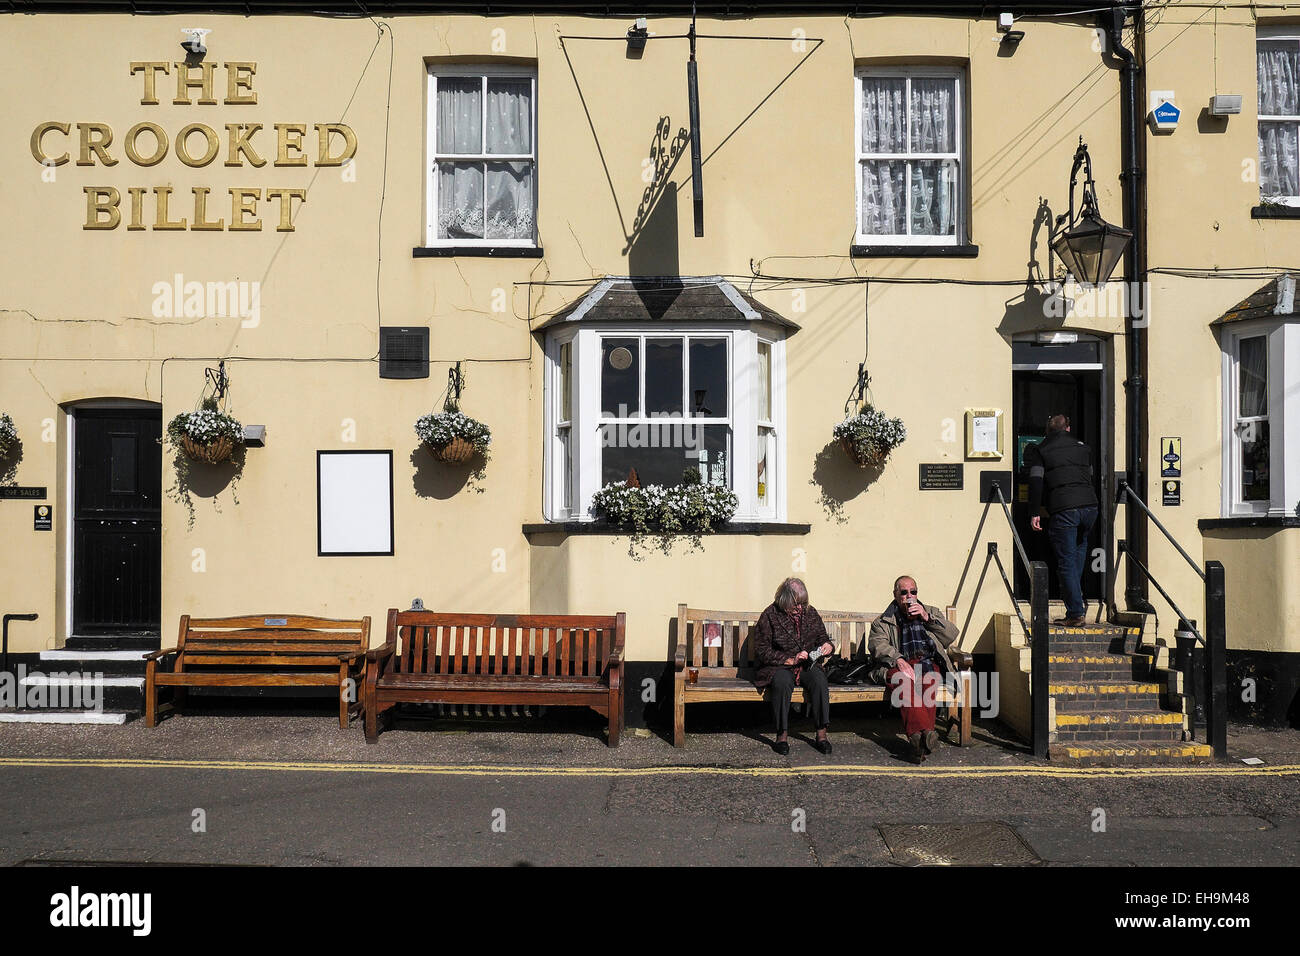 The Crooked Billet pub in Leigh on Sea in Essex. - Stock Image